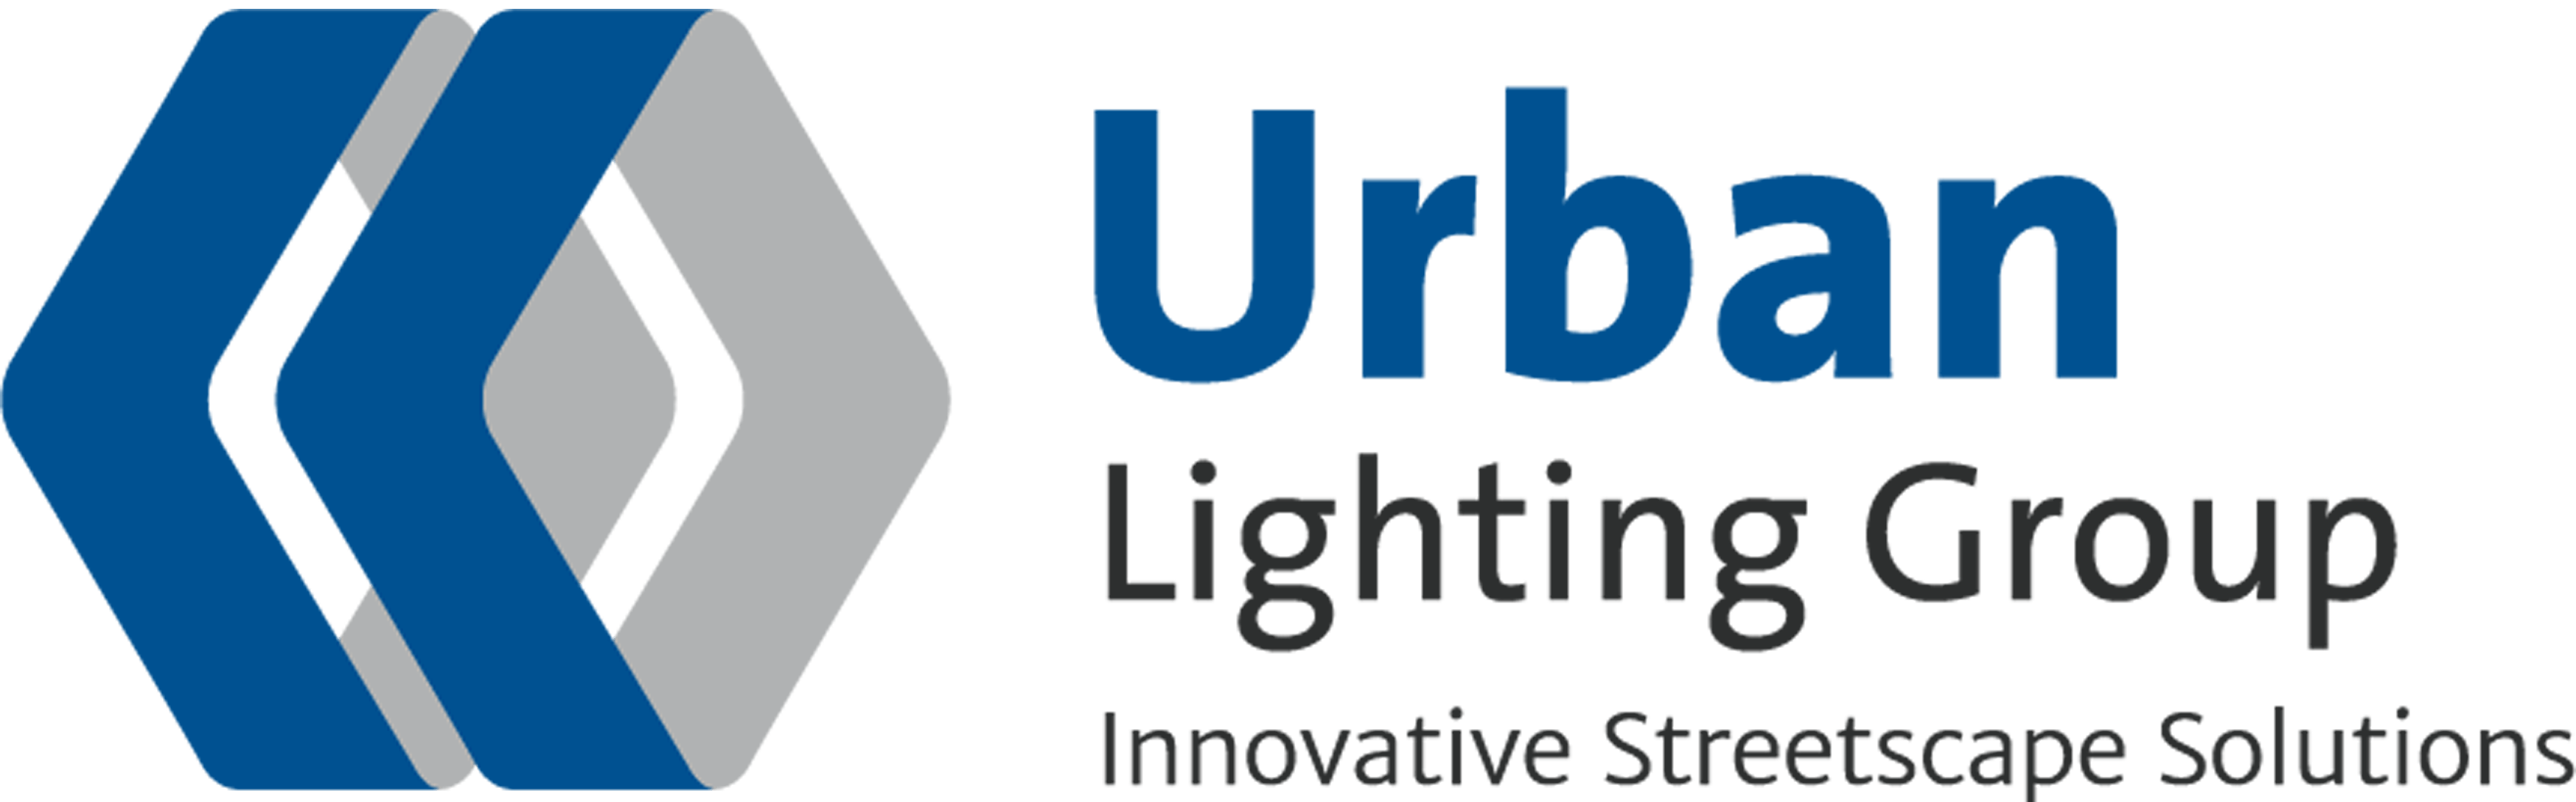 Urban Lighting Group